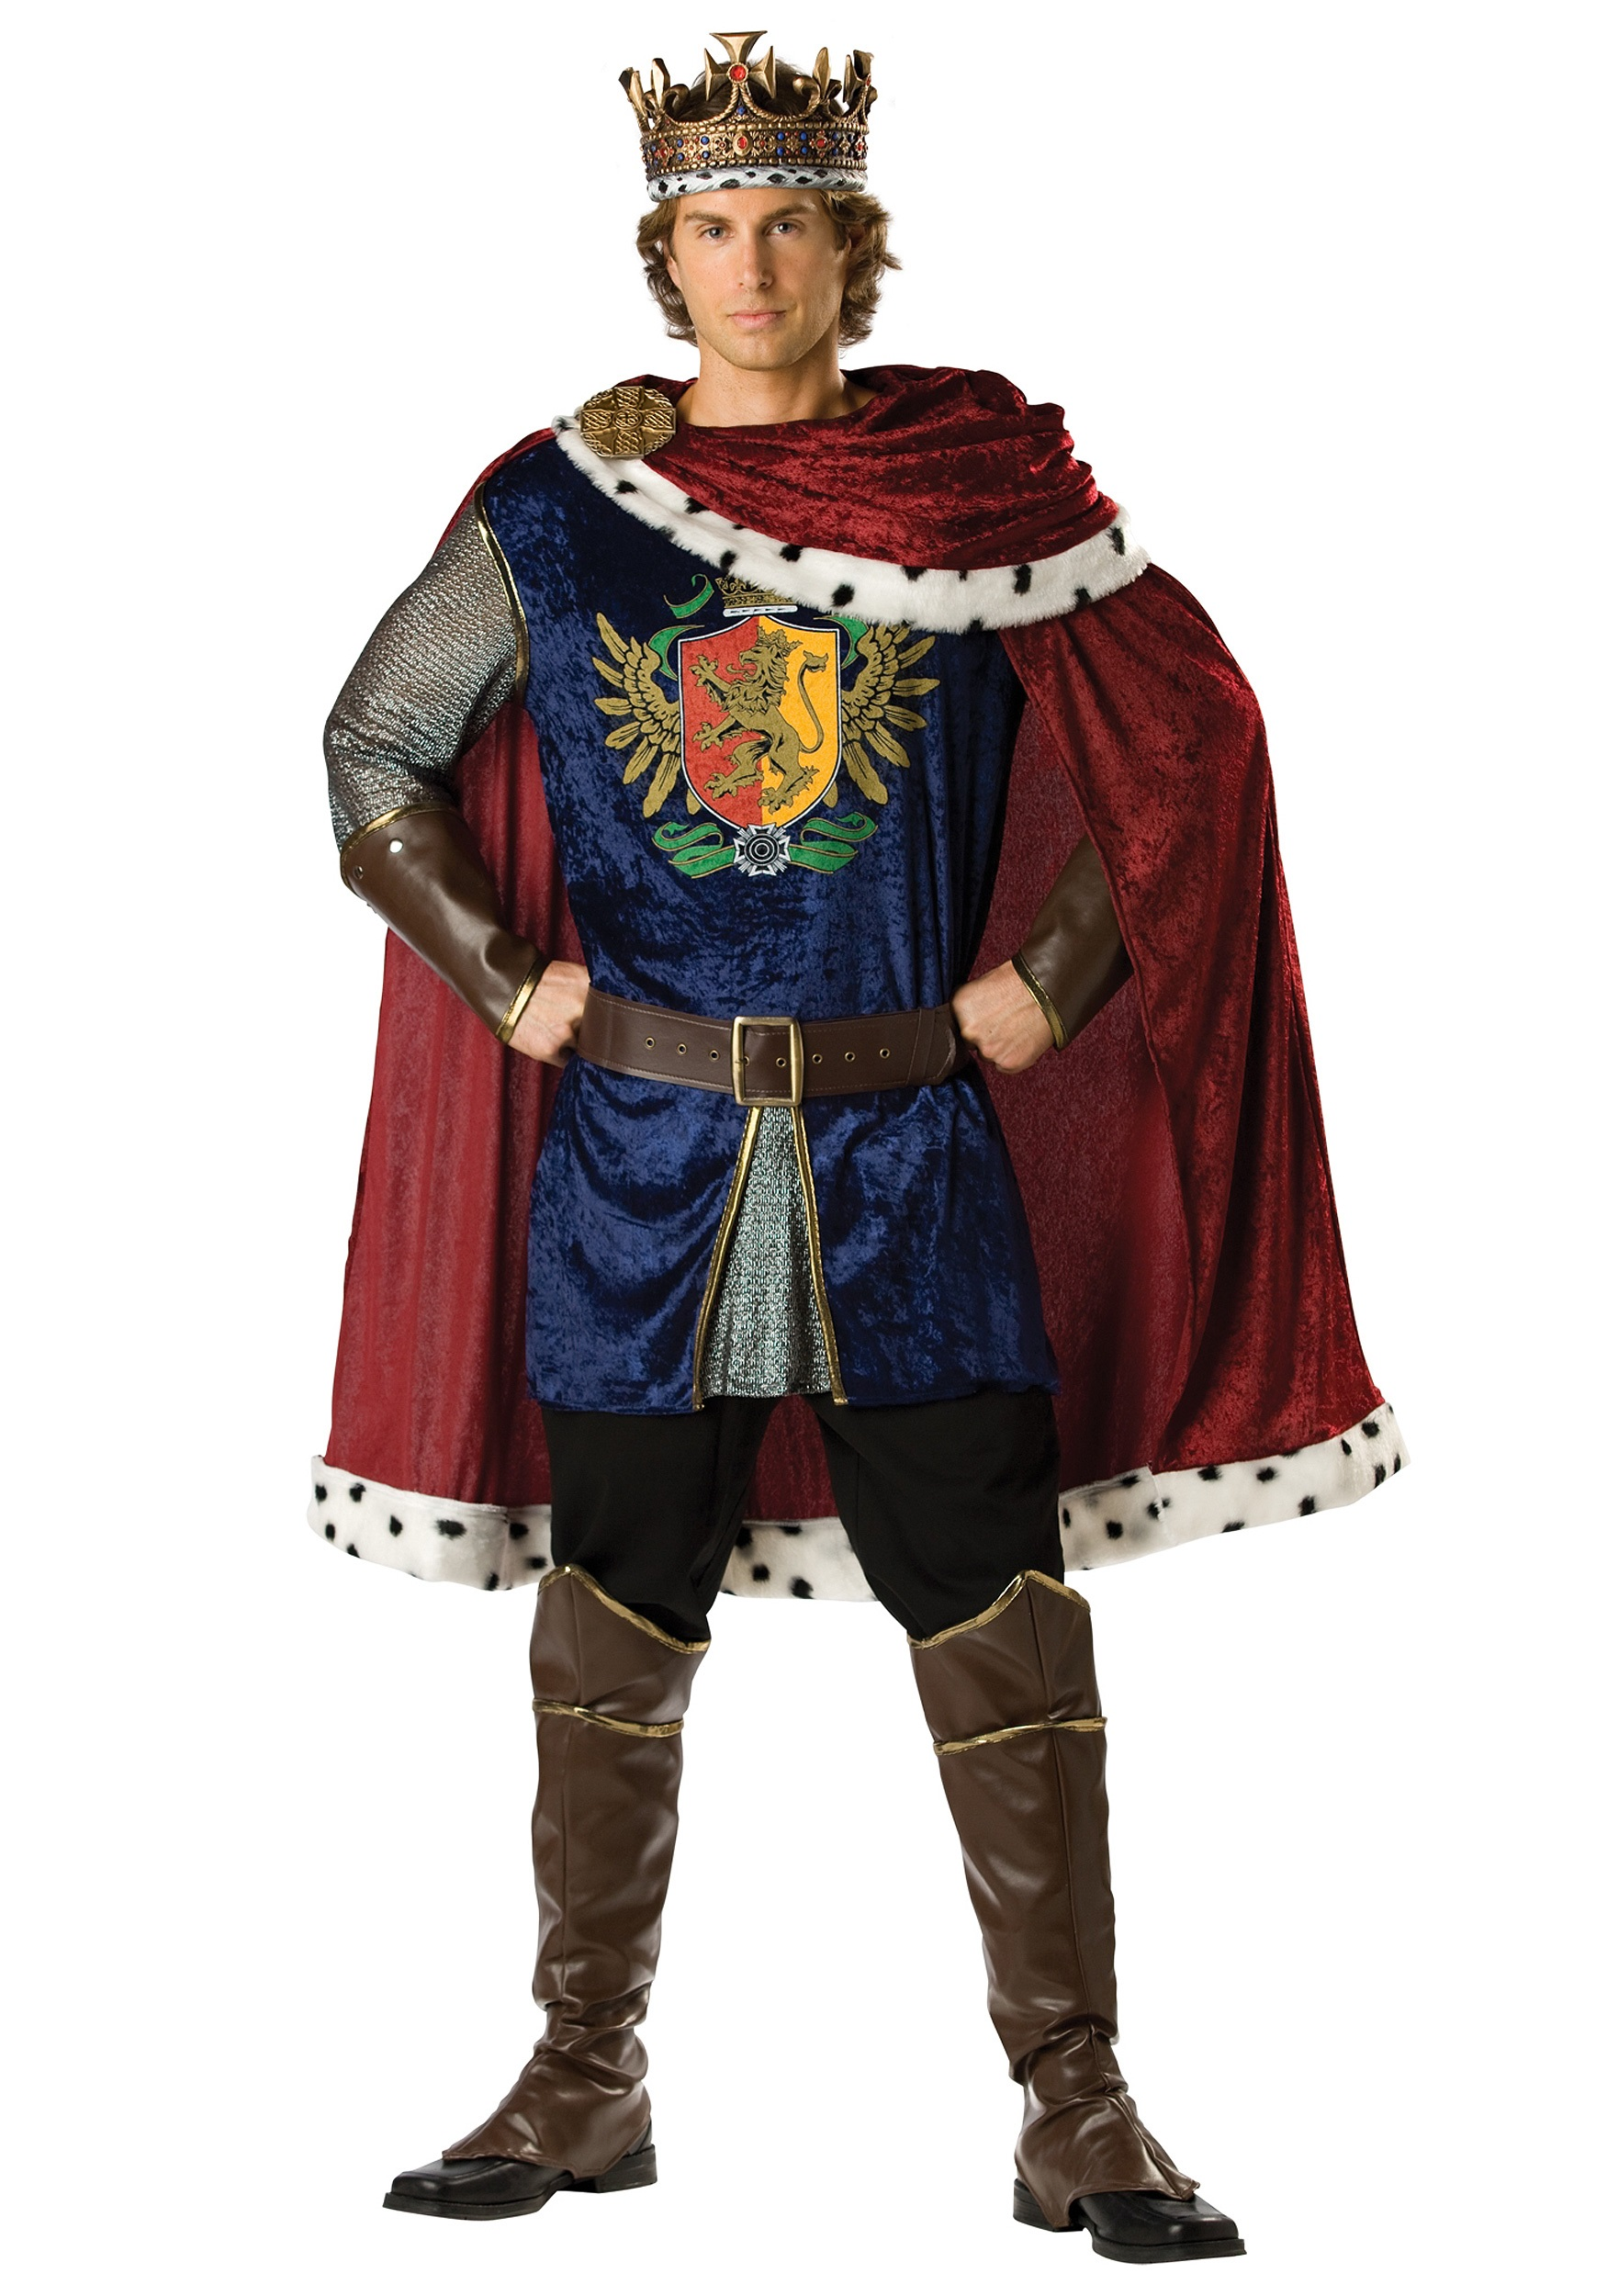 1000+ images about Medieval Costume Design on Pinterest